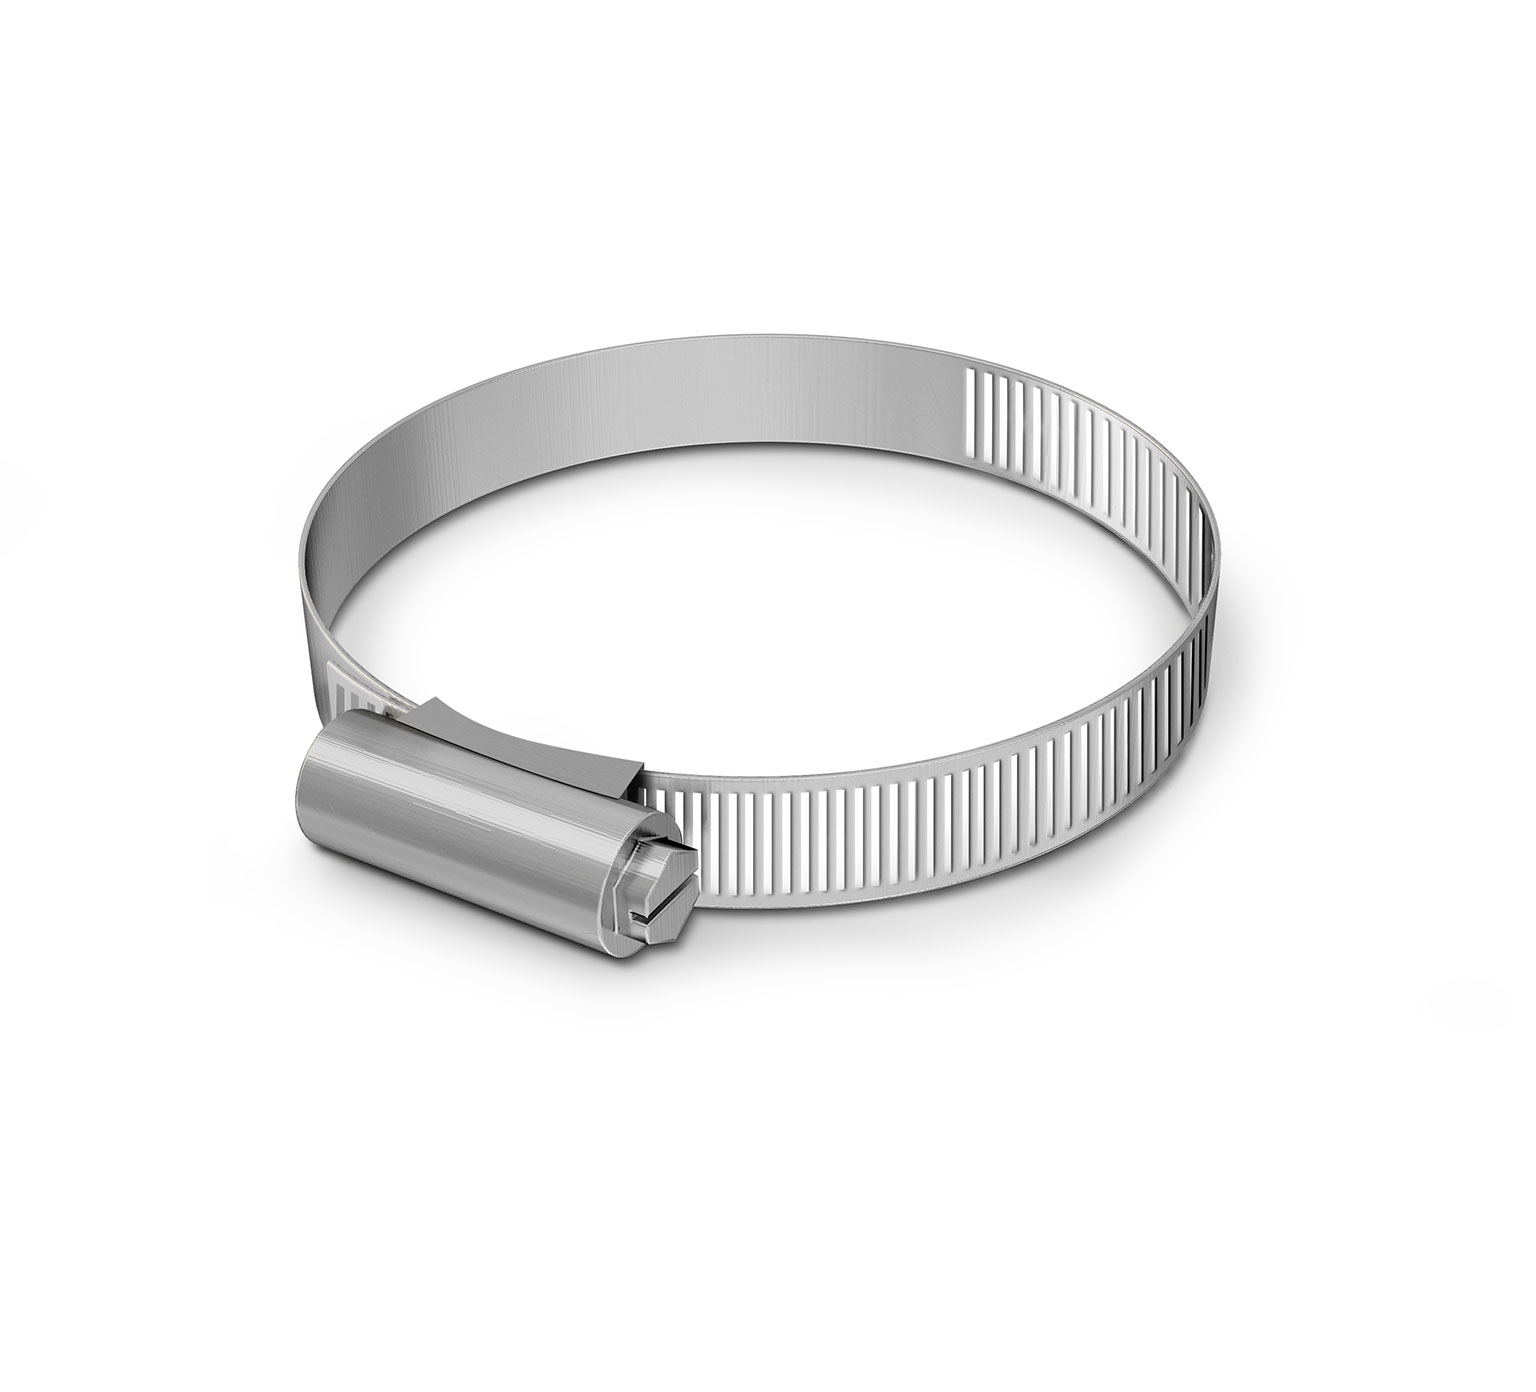 43555 Stainless Steel Hose Clamp - 2.62 - 3.5 in x 0.5 in alt 1